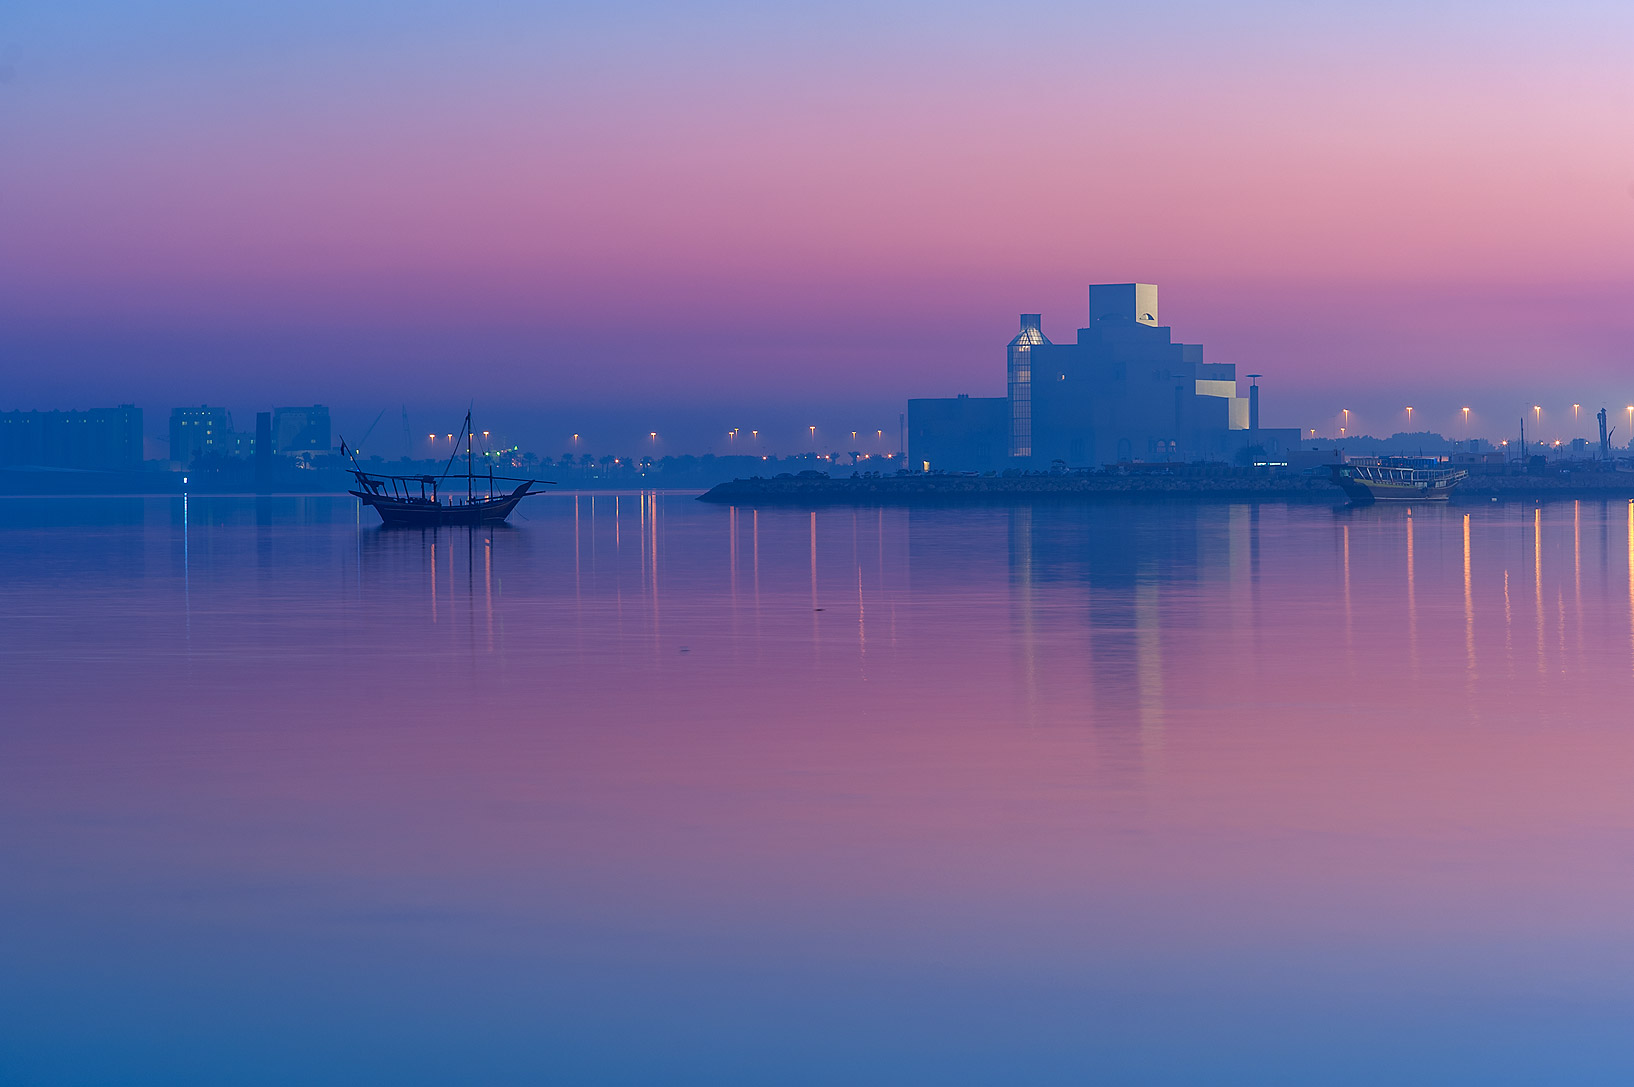 Museum of Islamic Art from Corniche promenade at dusk. Doha, Qatar